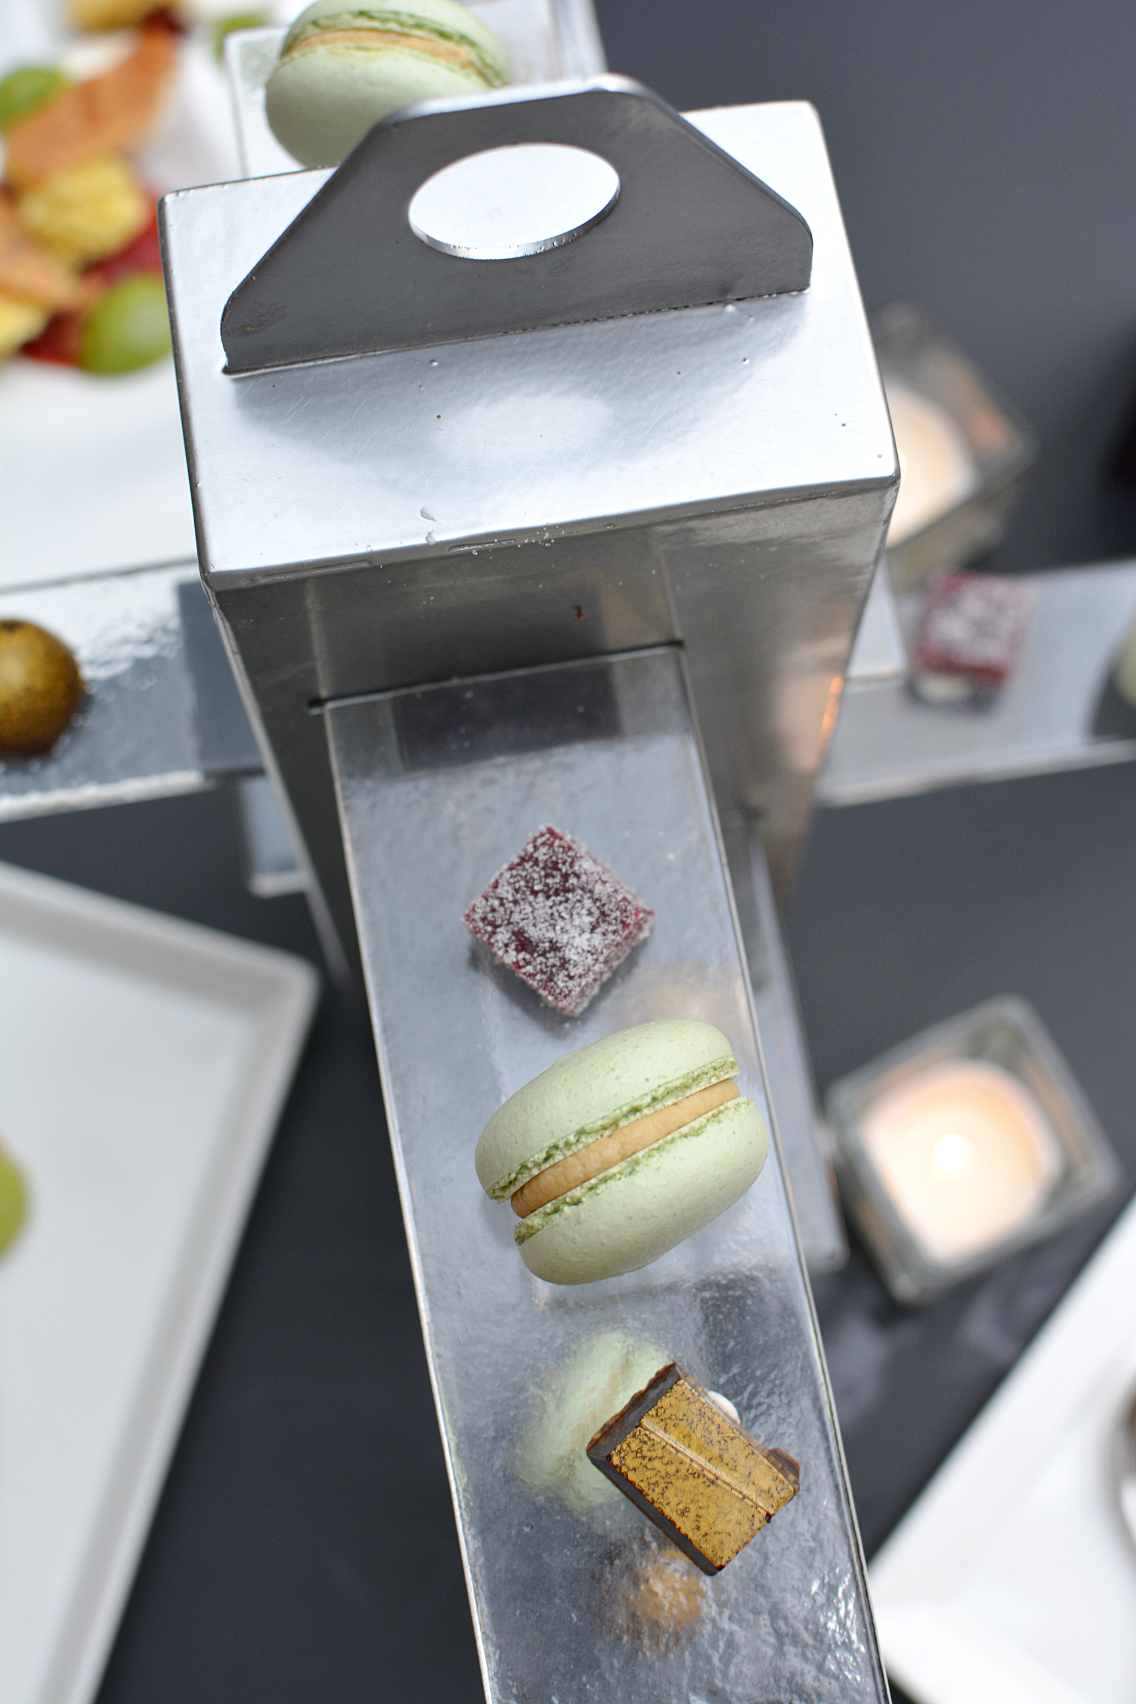 Sofitel Chicago Mignardises macarons, pate fruits, molded chocolates 4